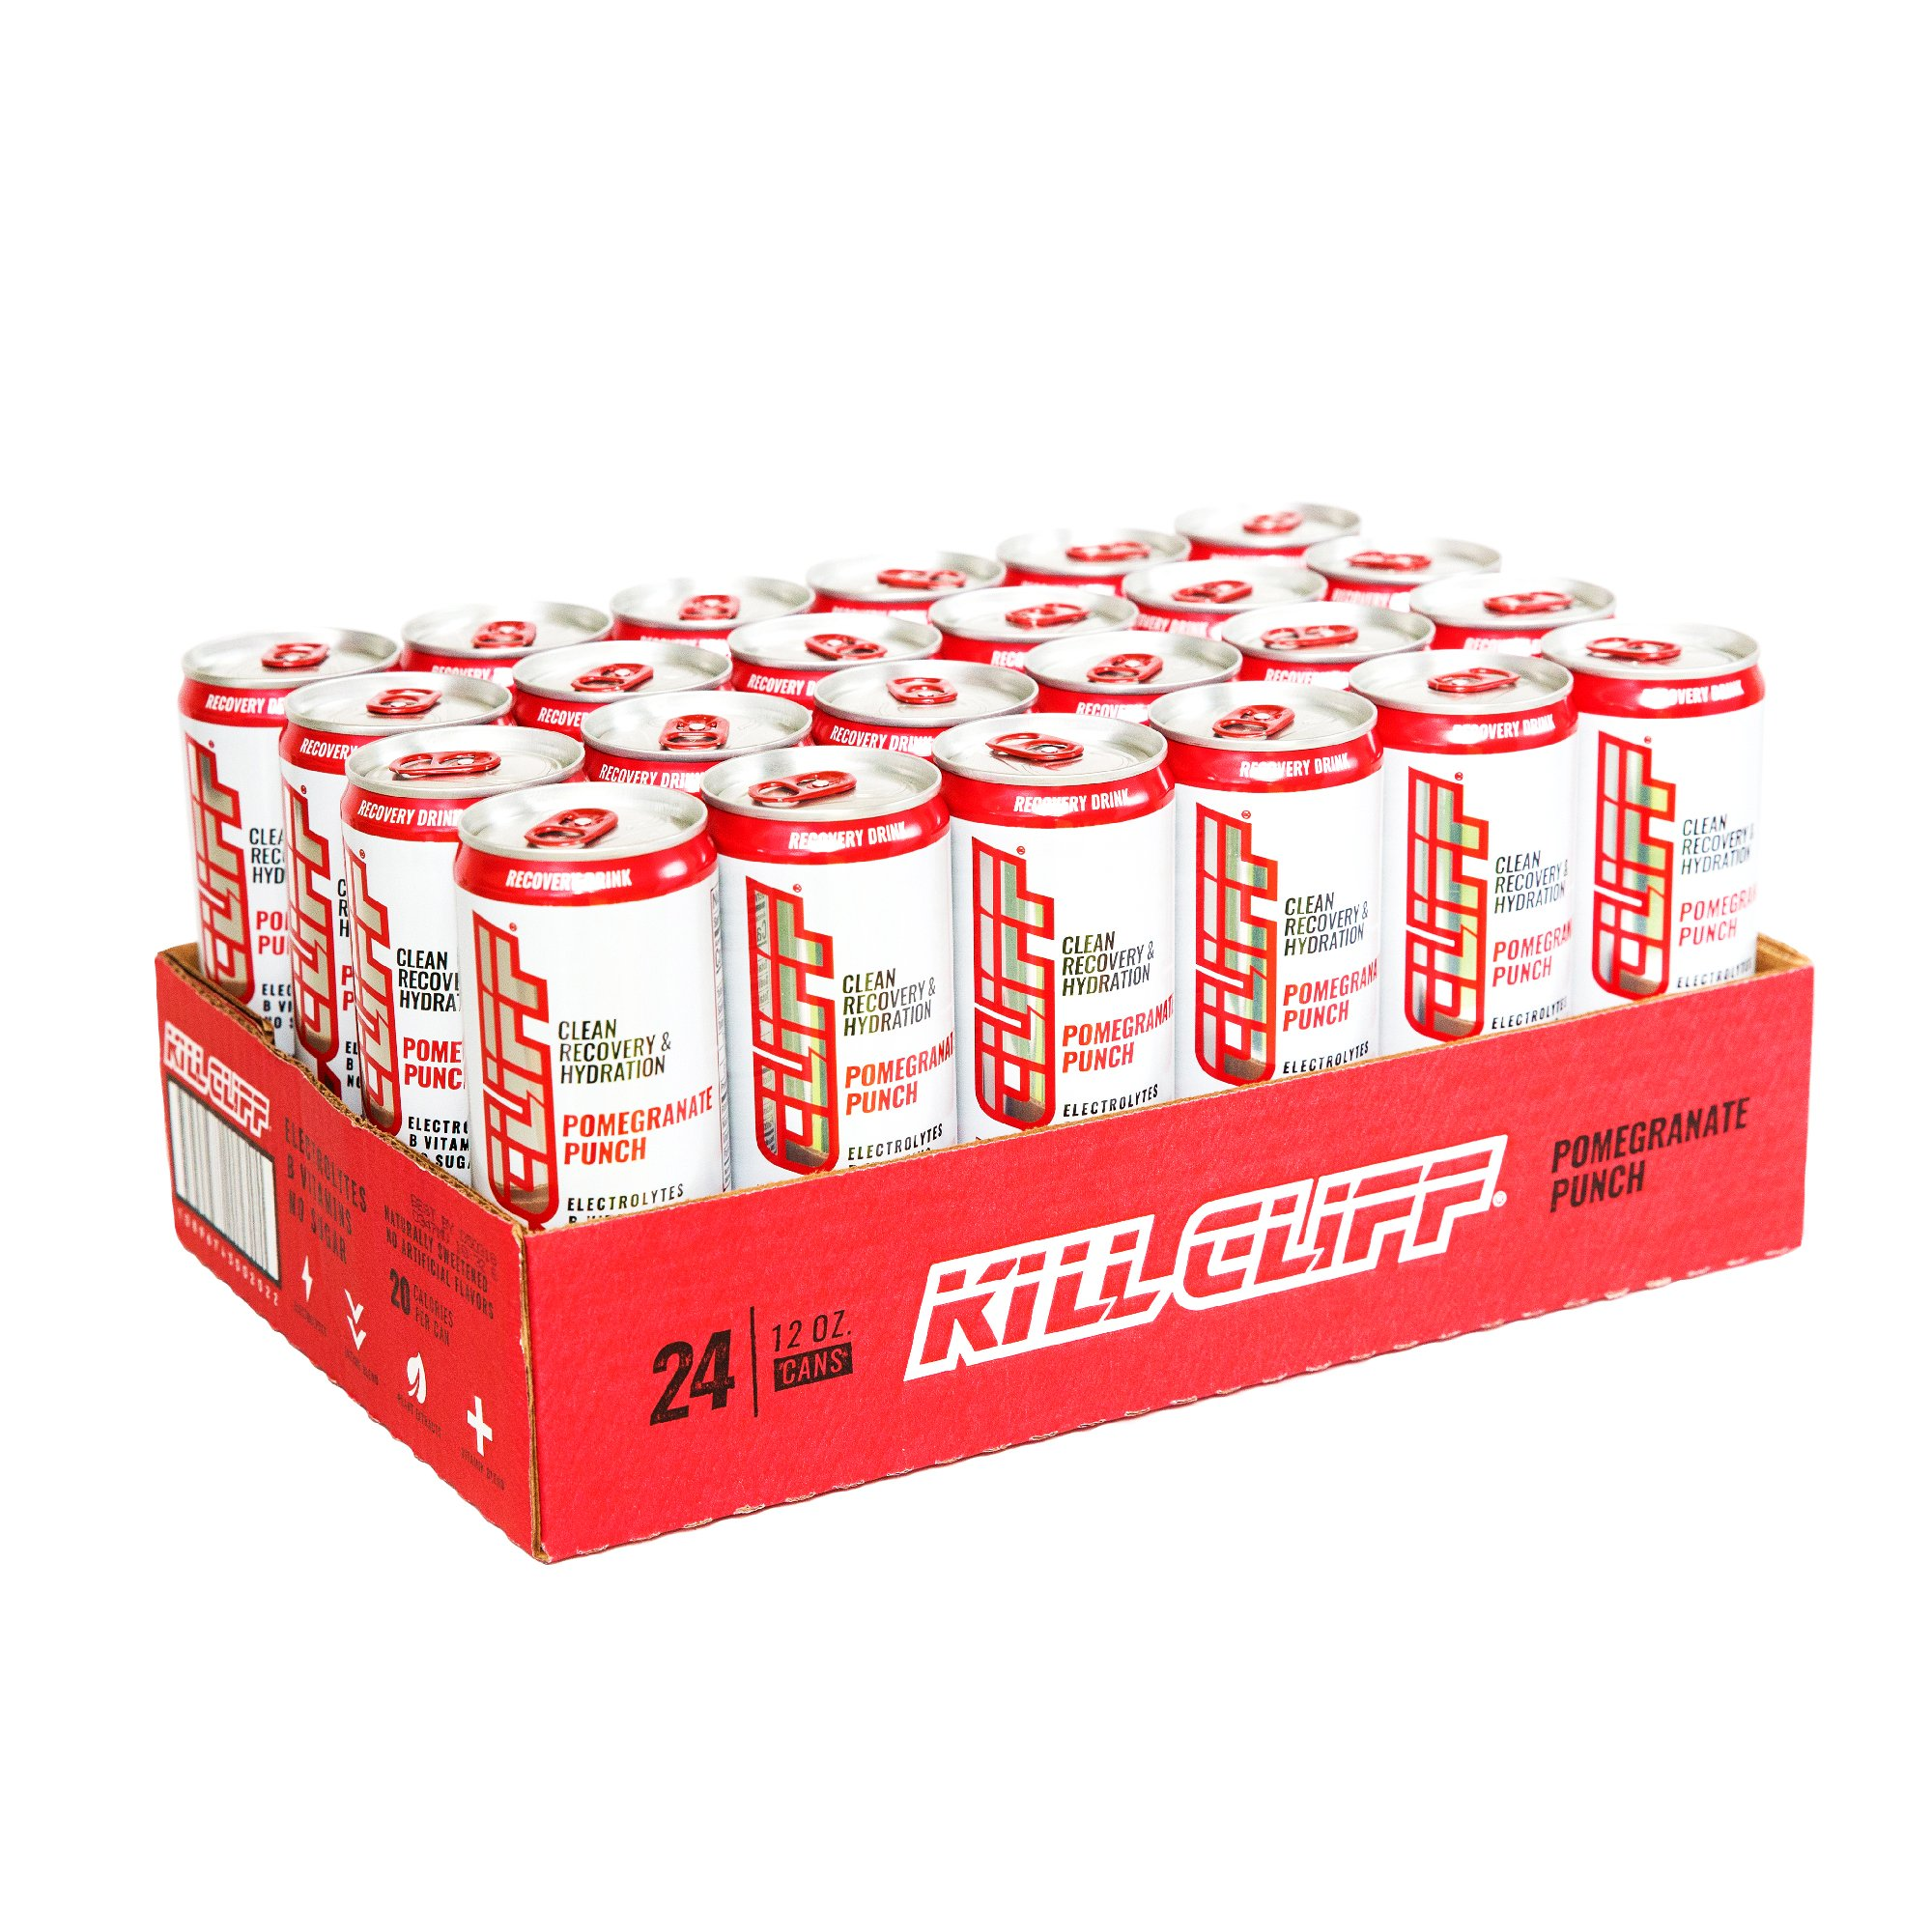 Kill Cliff Electrolyte Recovery Drink, Pomegranate Punch, 12 Ounce, 24 Count; Low Cal, No Sugar